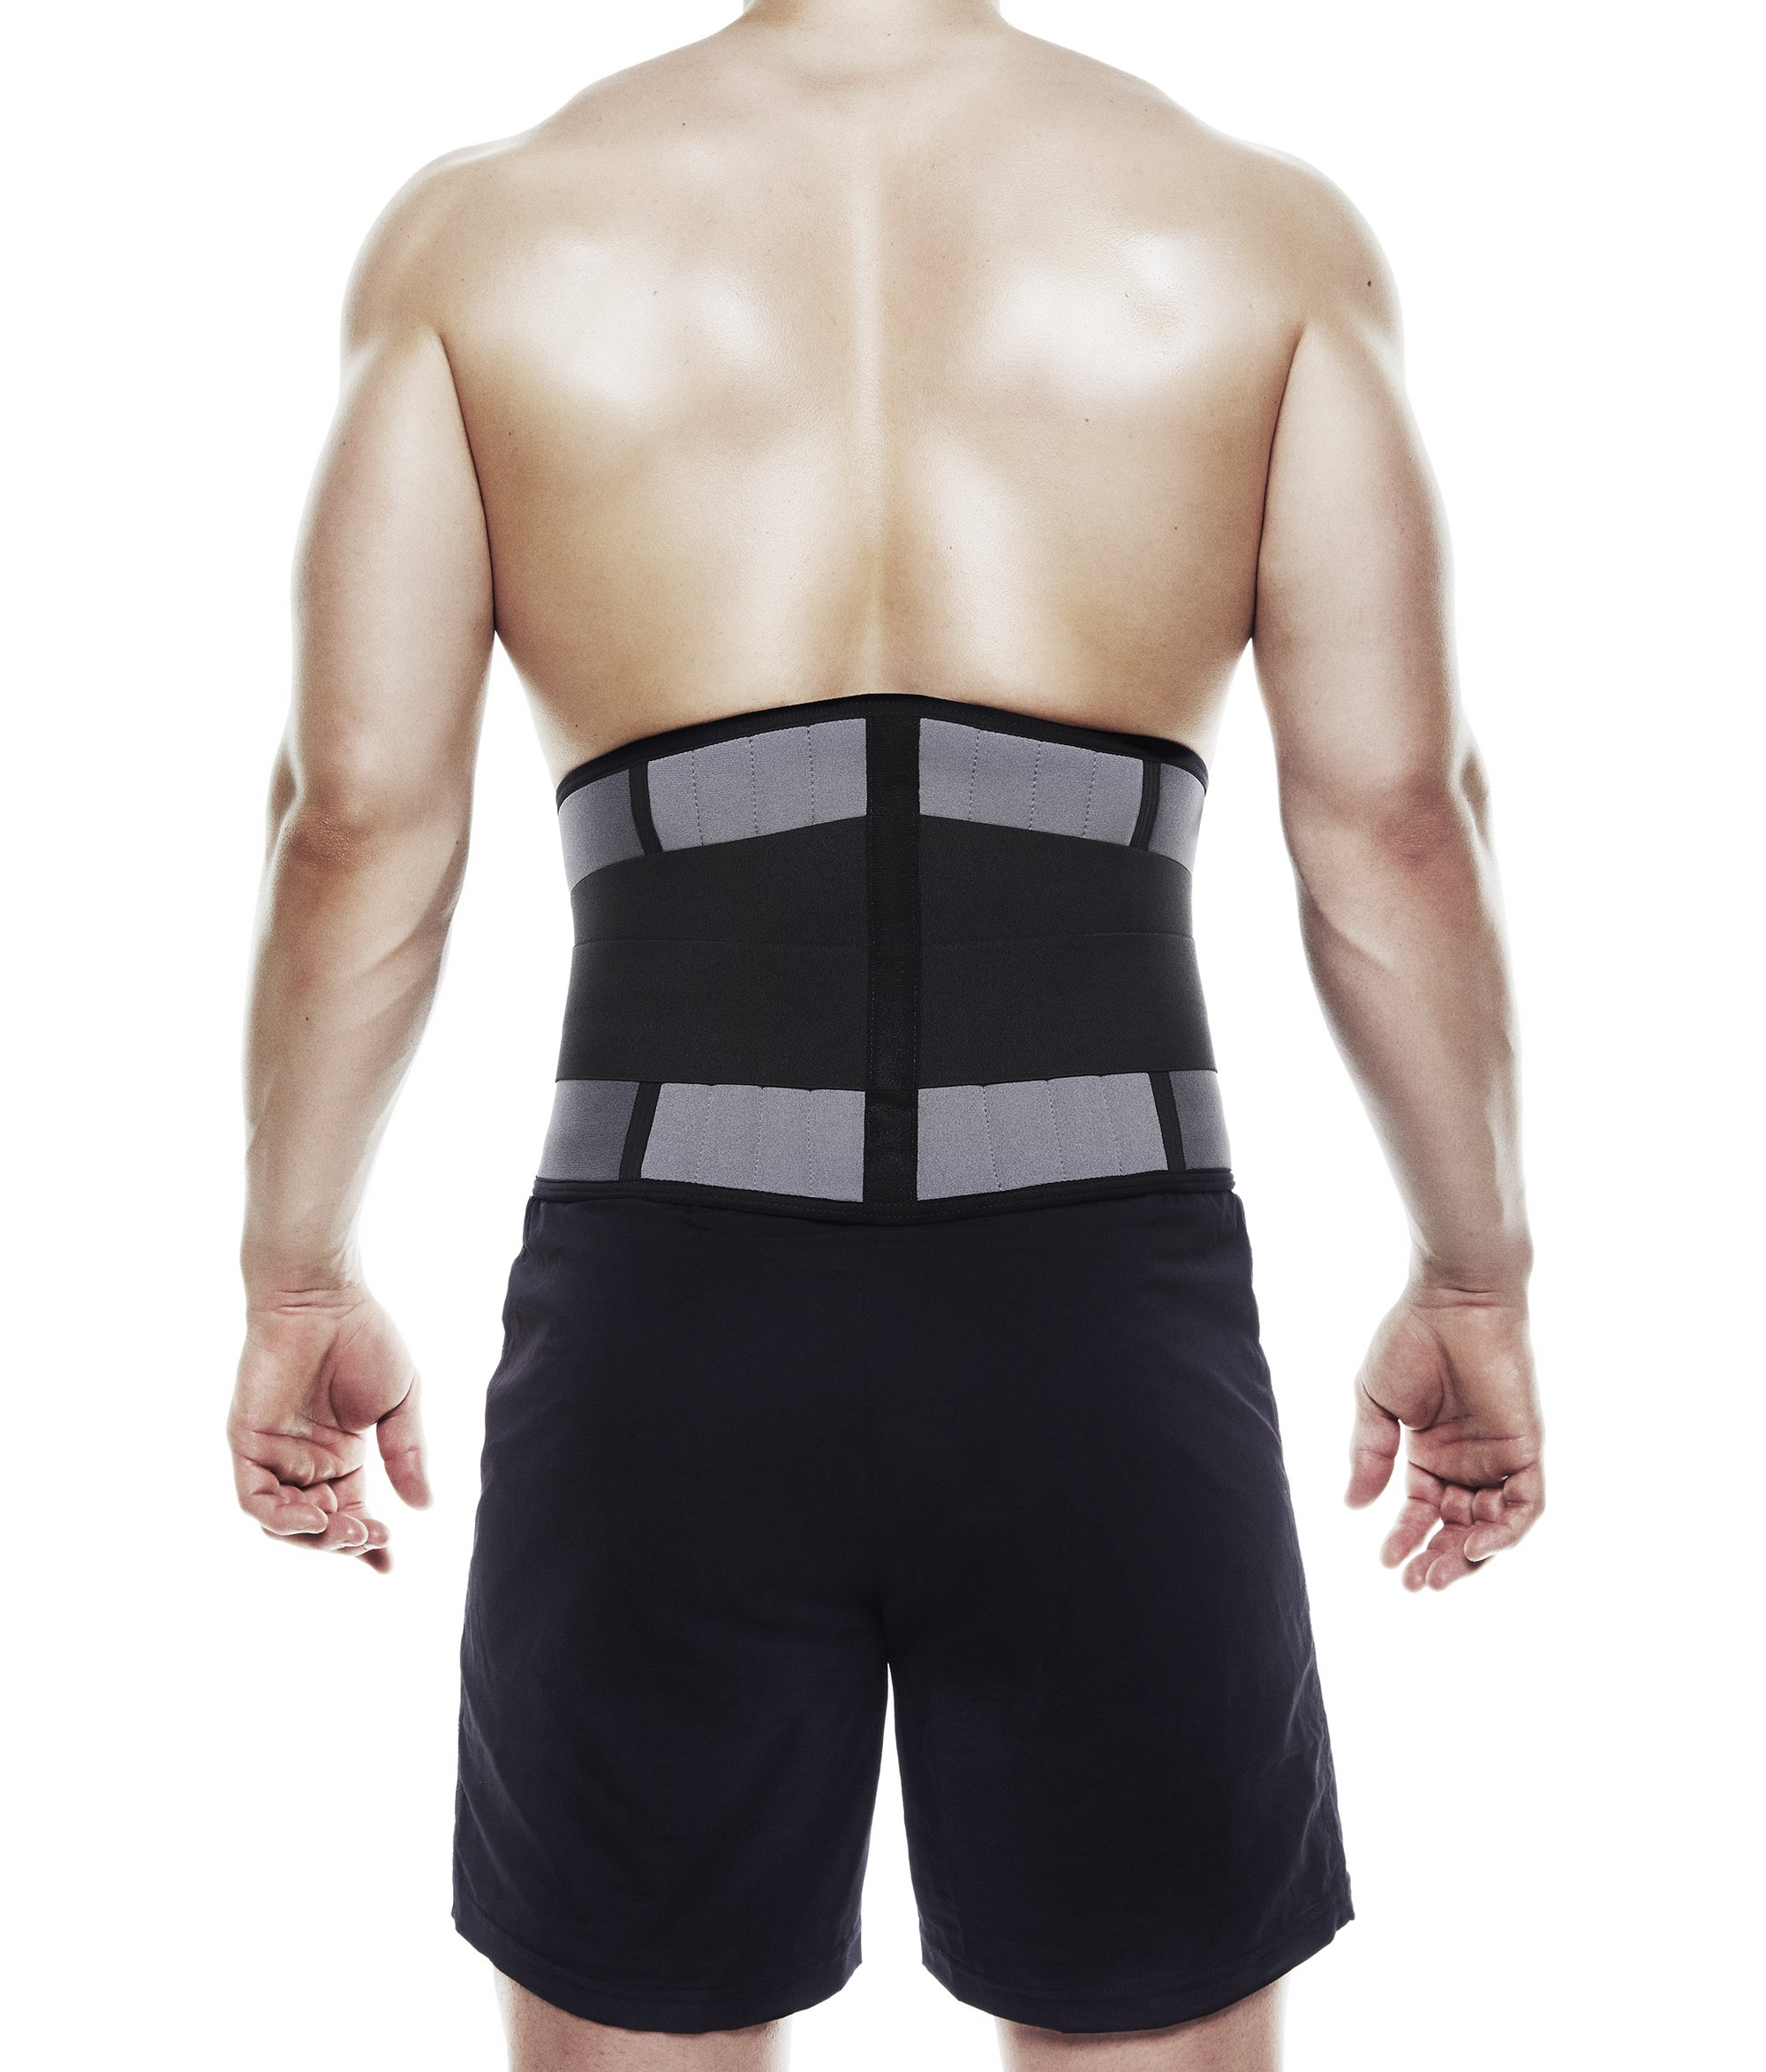 Rehband Core Line Back Support X-Stable 7732 5mm - Grey - X-Large by Rehband (Image #3)